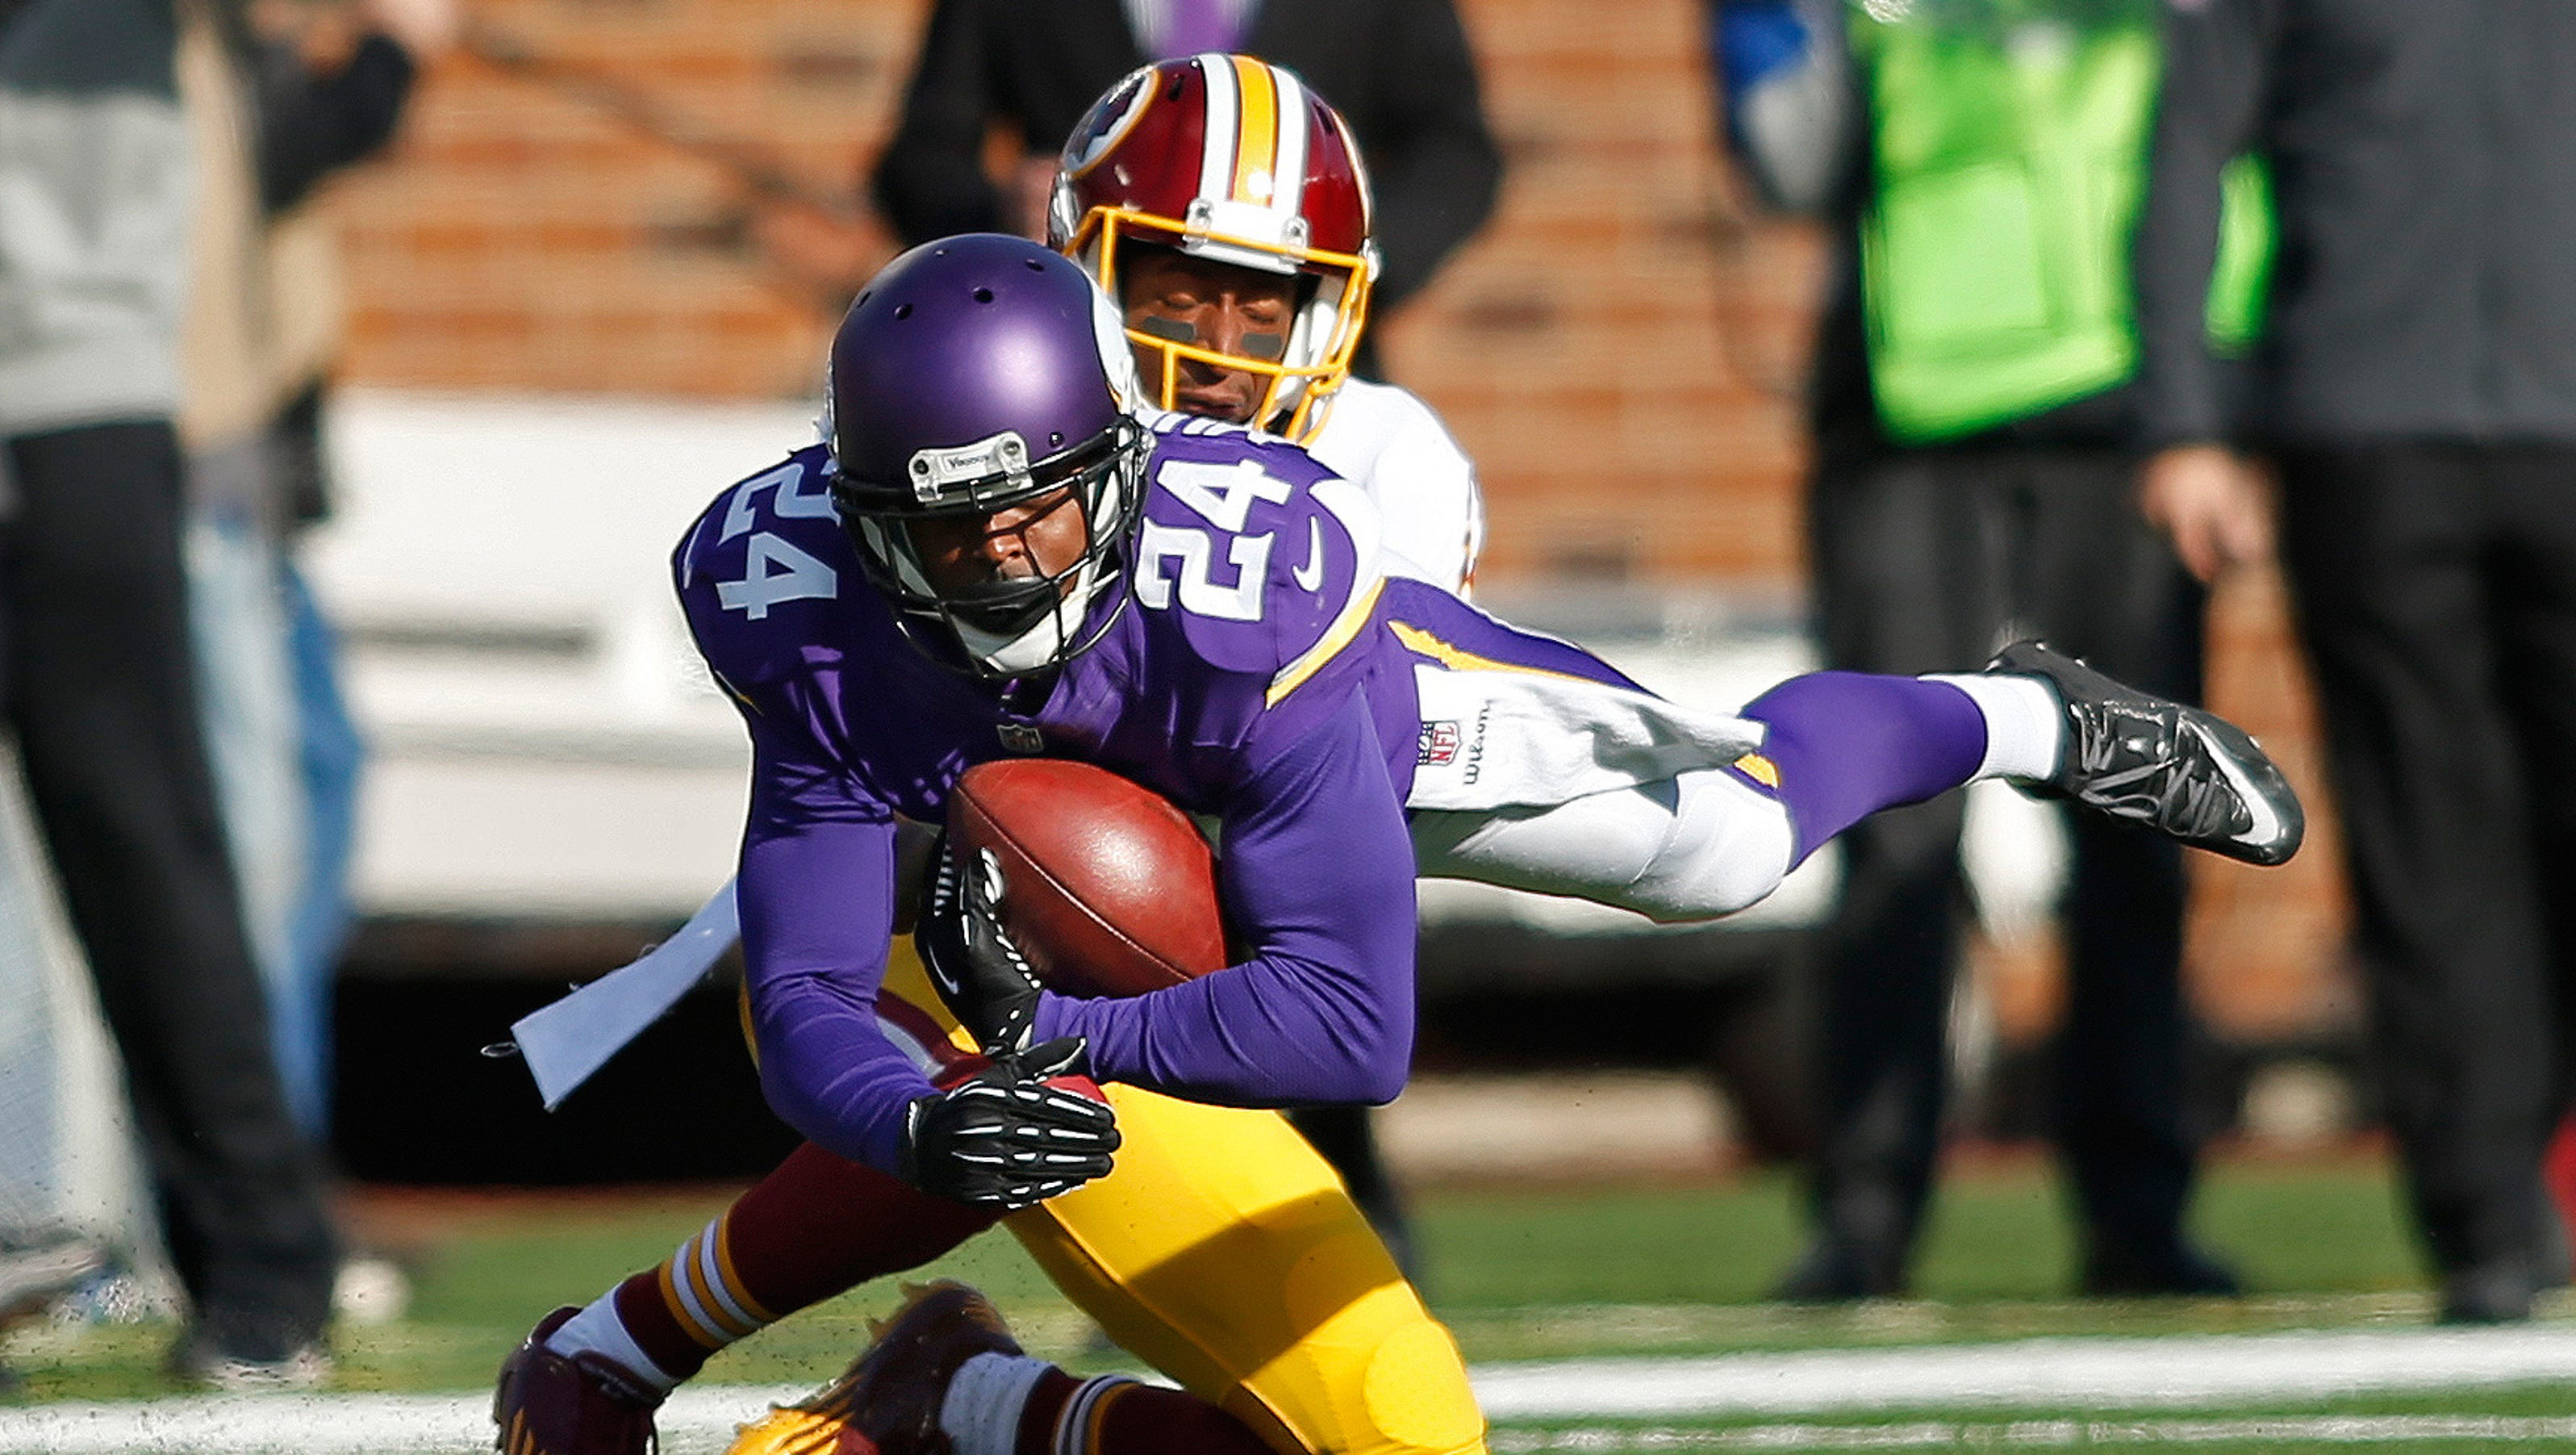 EDEN PRAIRIE, Minn. – Captain Munnerlyn is a believer. The Minnesota Vikings' veteran cornerback thought he'd miss up to a month after injuring a...